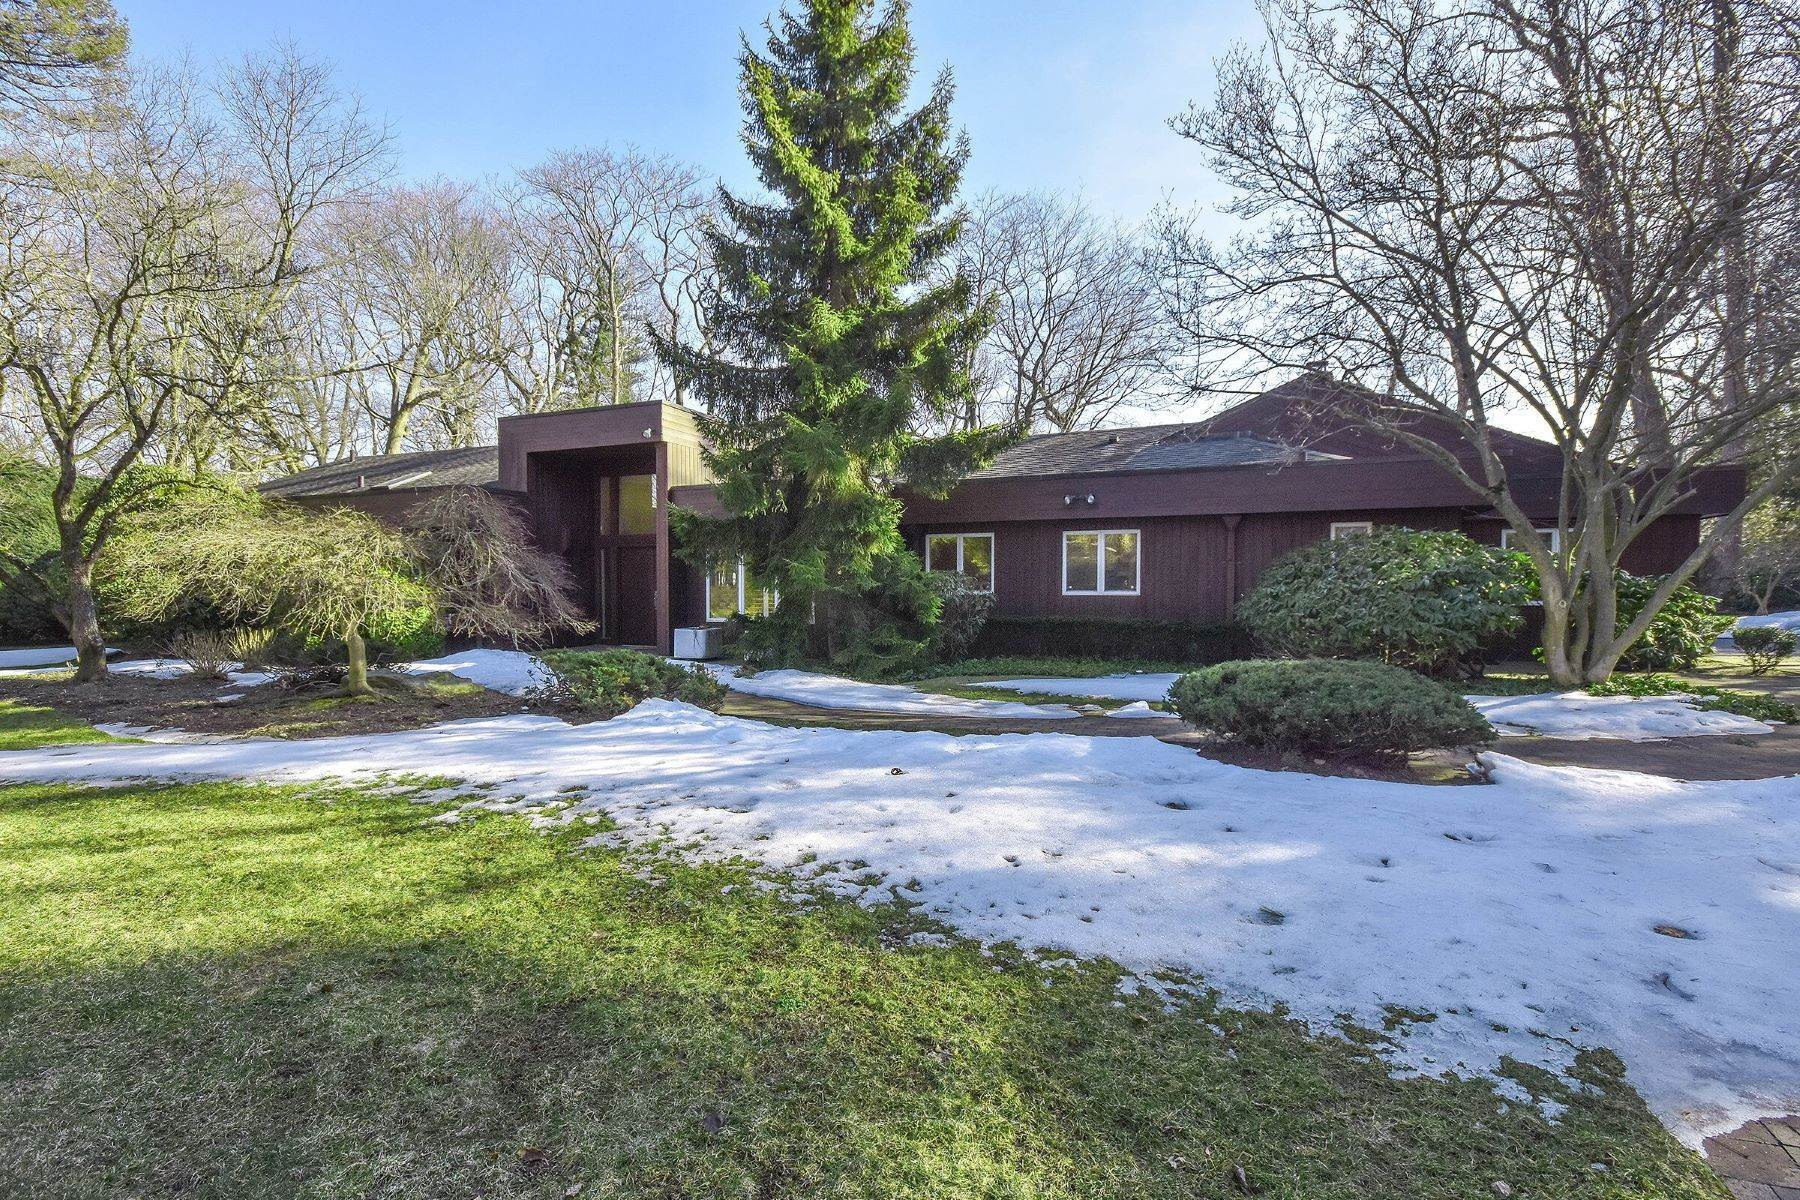 Single Family Homes for Sale at 31 Woodland Drive, Sands Point, Ny, 11050 31 Woodland Drive Sands Point, New York 11050 United States